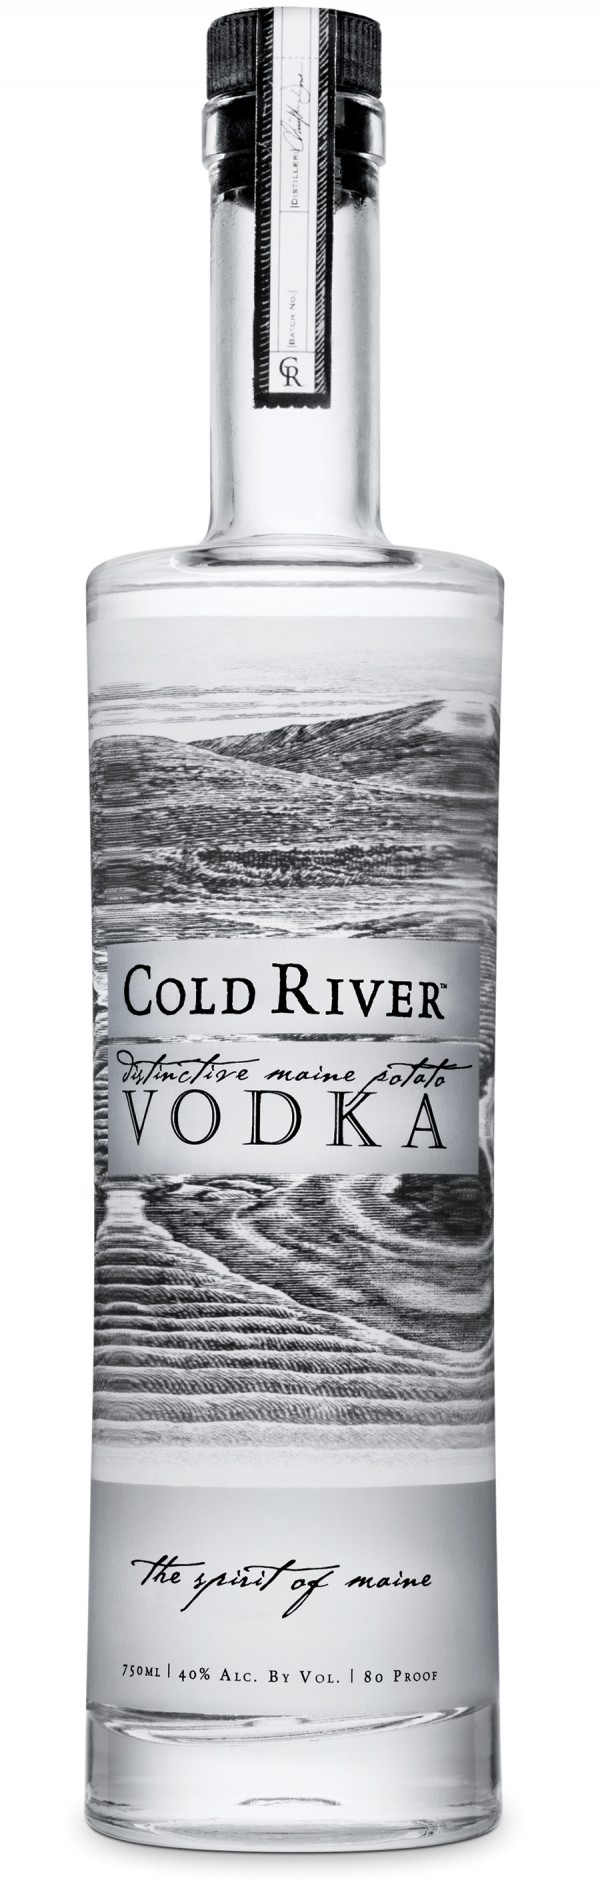 Cold River Vodka, craft-distilled in small batches by Maine Distilleries, has been named as one of the top spirits in the world in 2011 by a leading spirits expert.